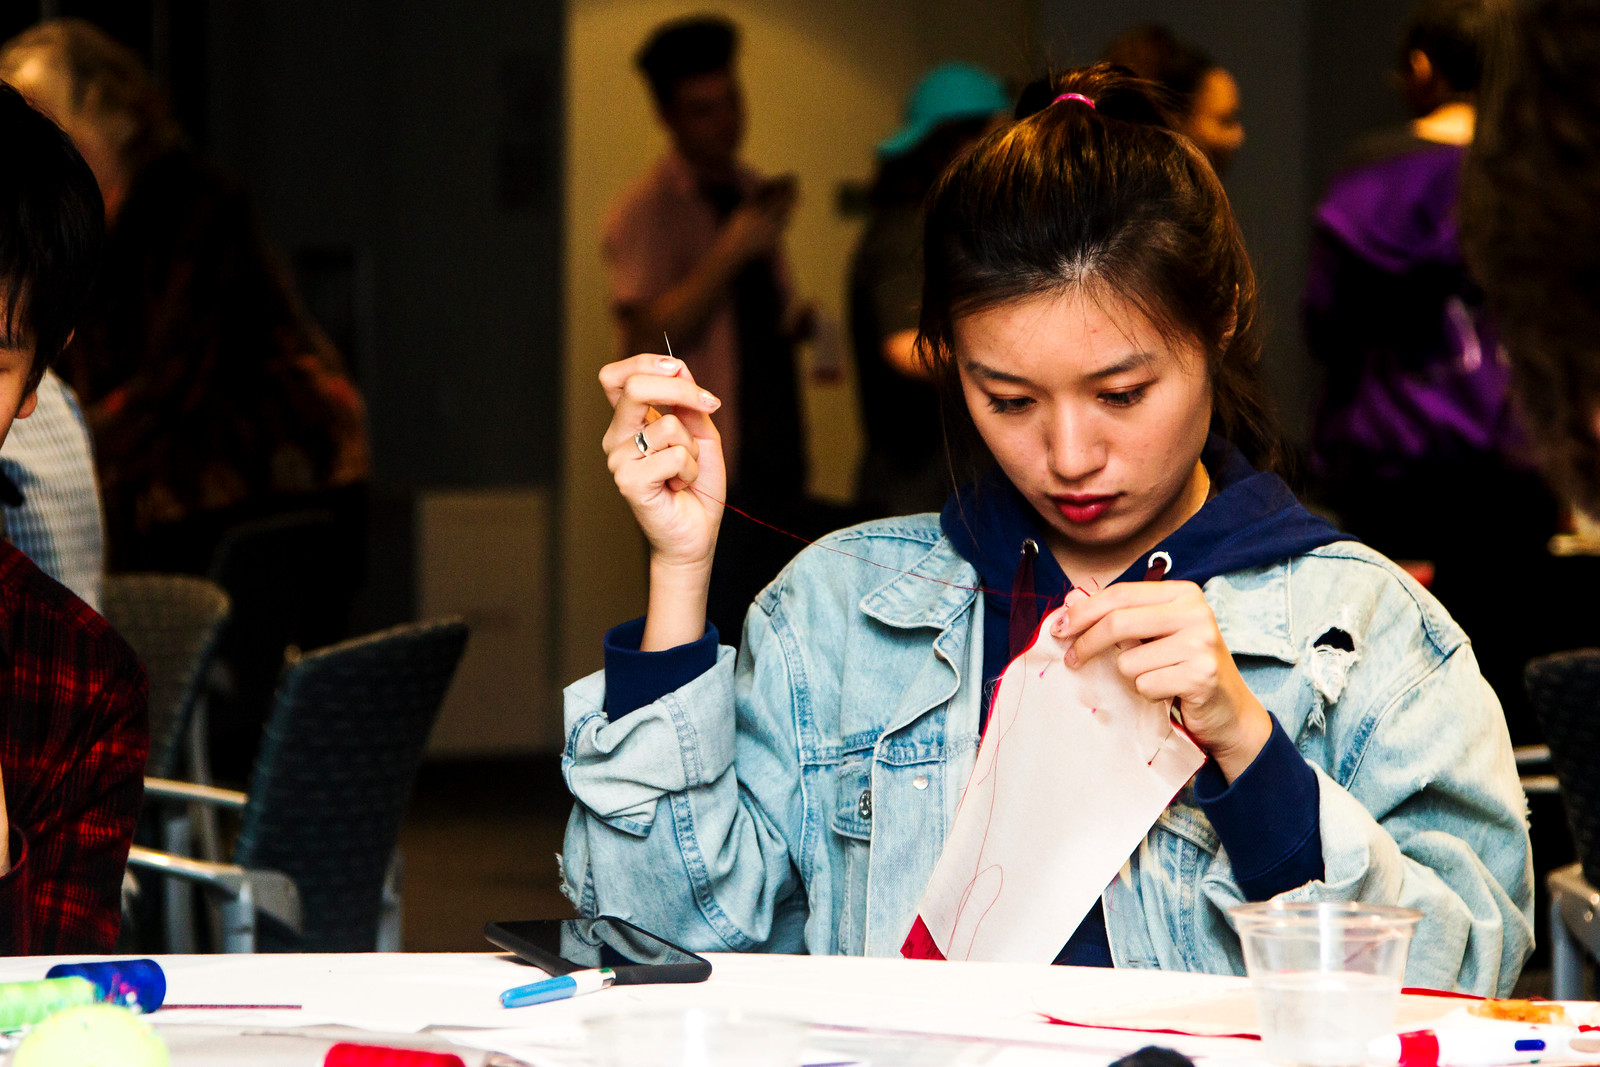 Summer Program - Fashion | LMU Pre-College Programs: Intro to Design for Stage and Screen